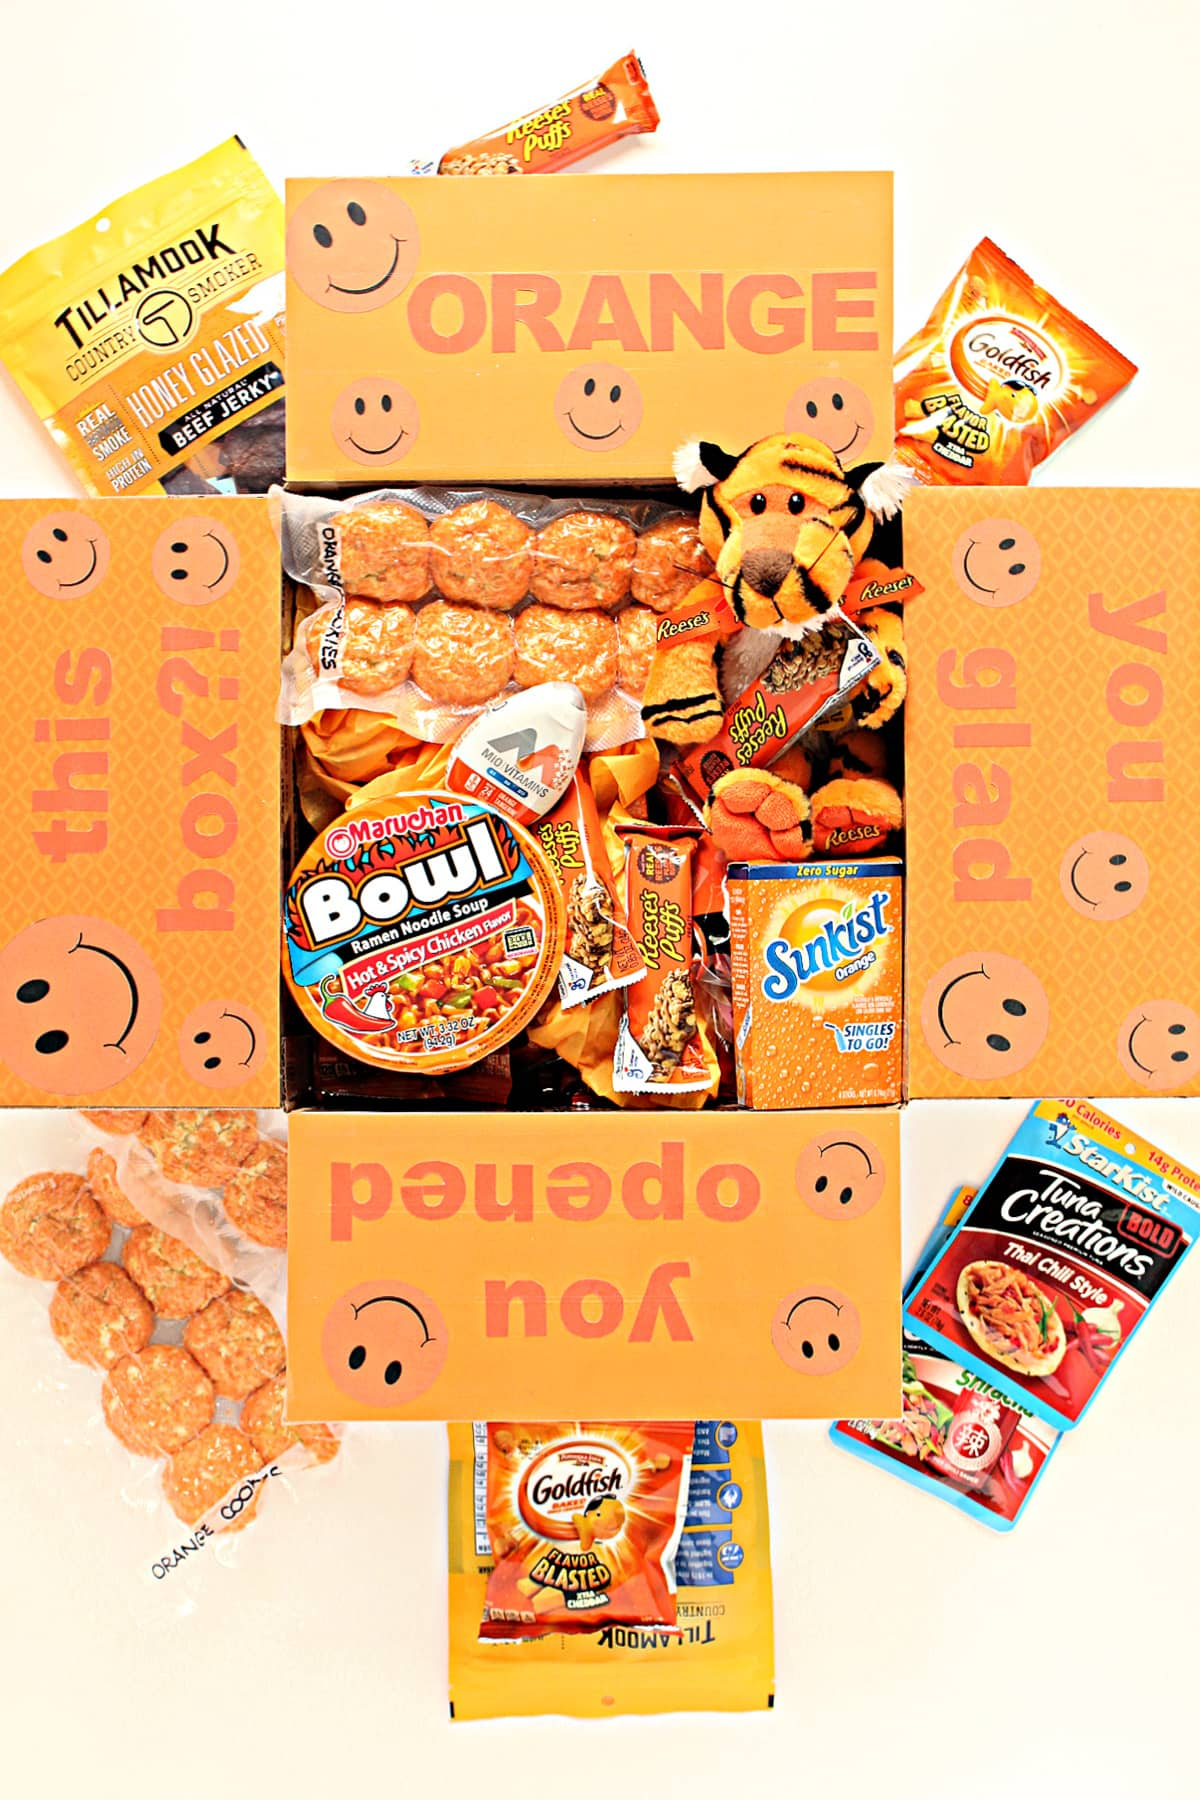 Care package box filled with orange packaged treats and orange box decorated box flaps.